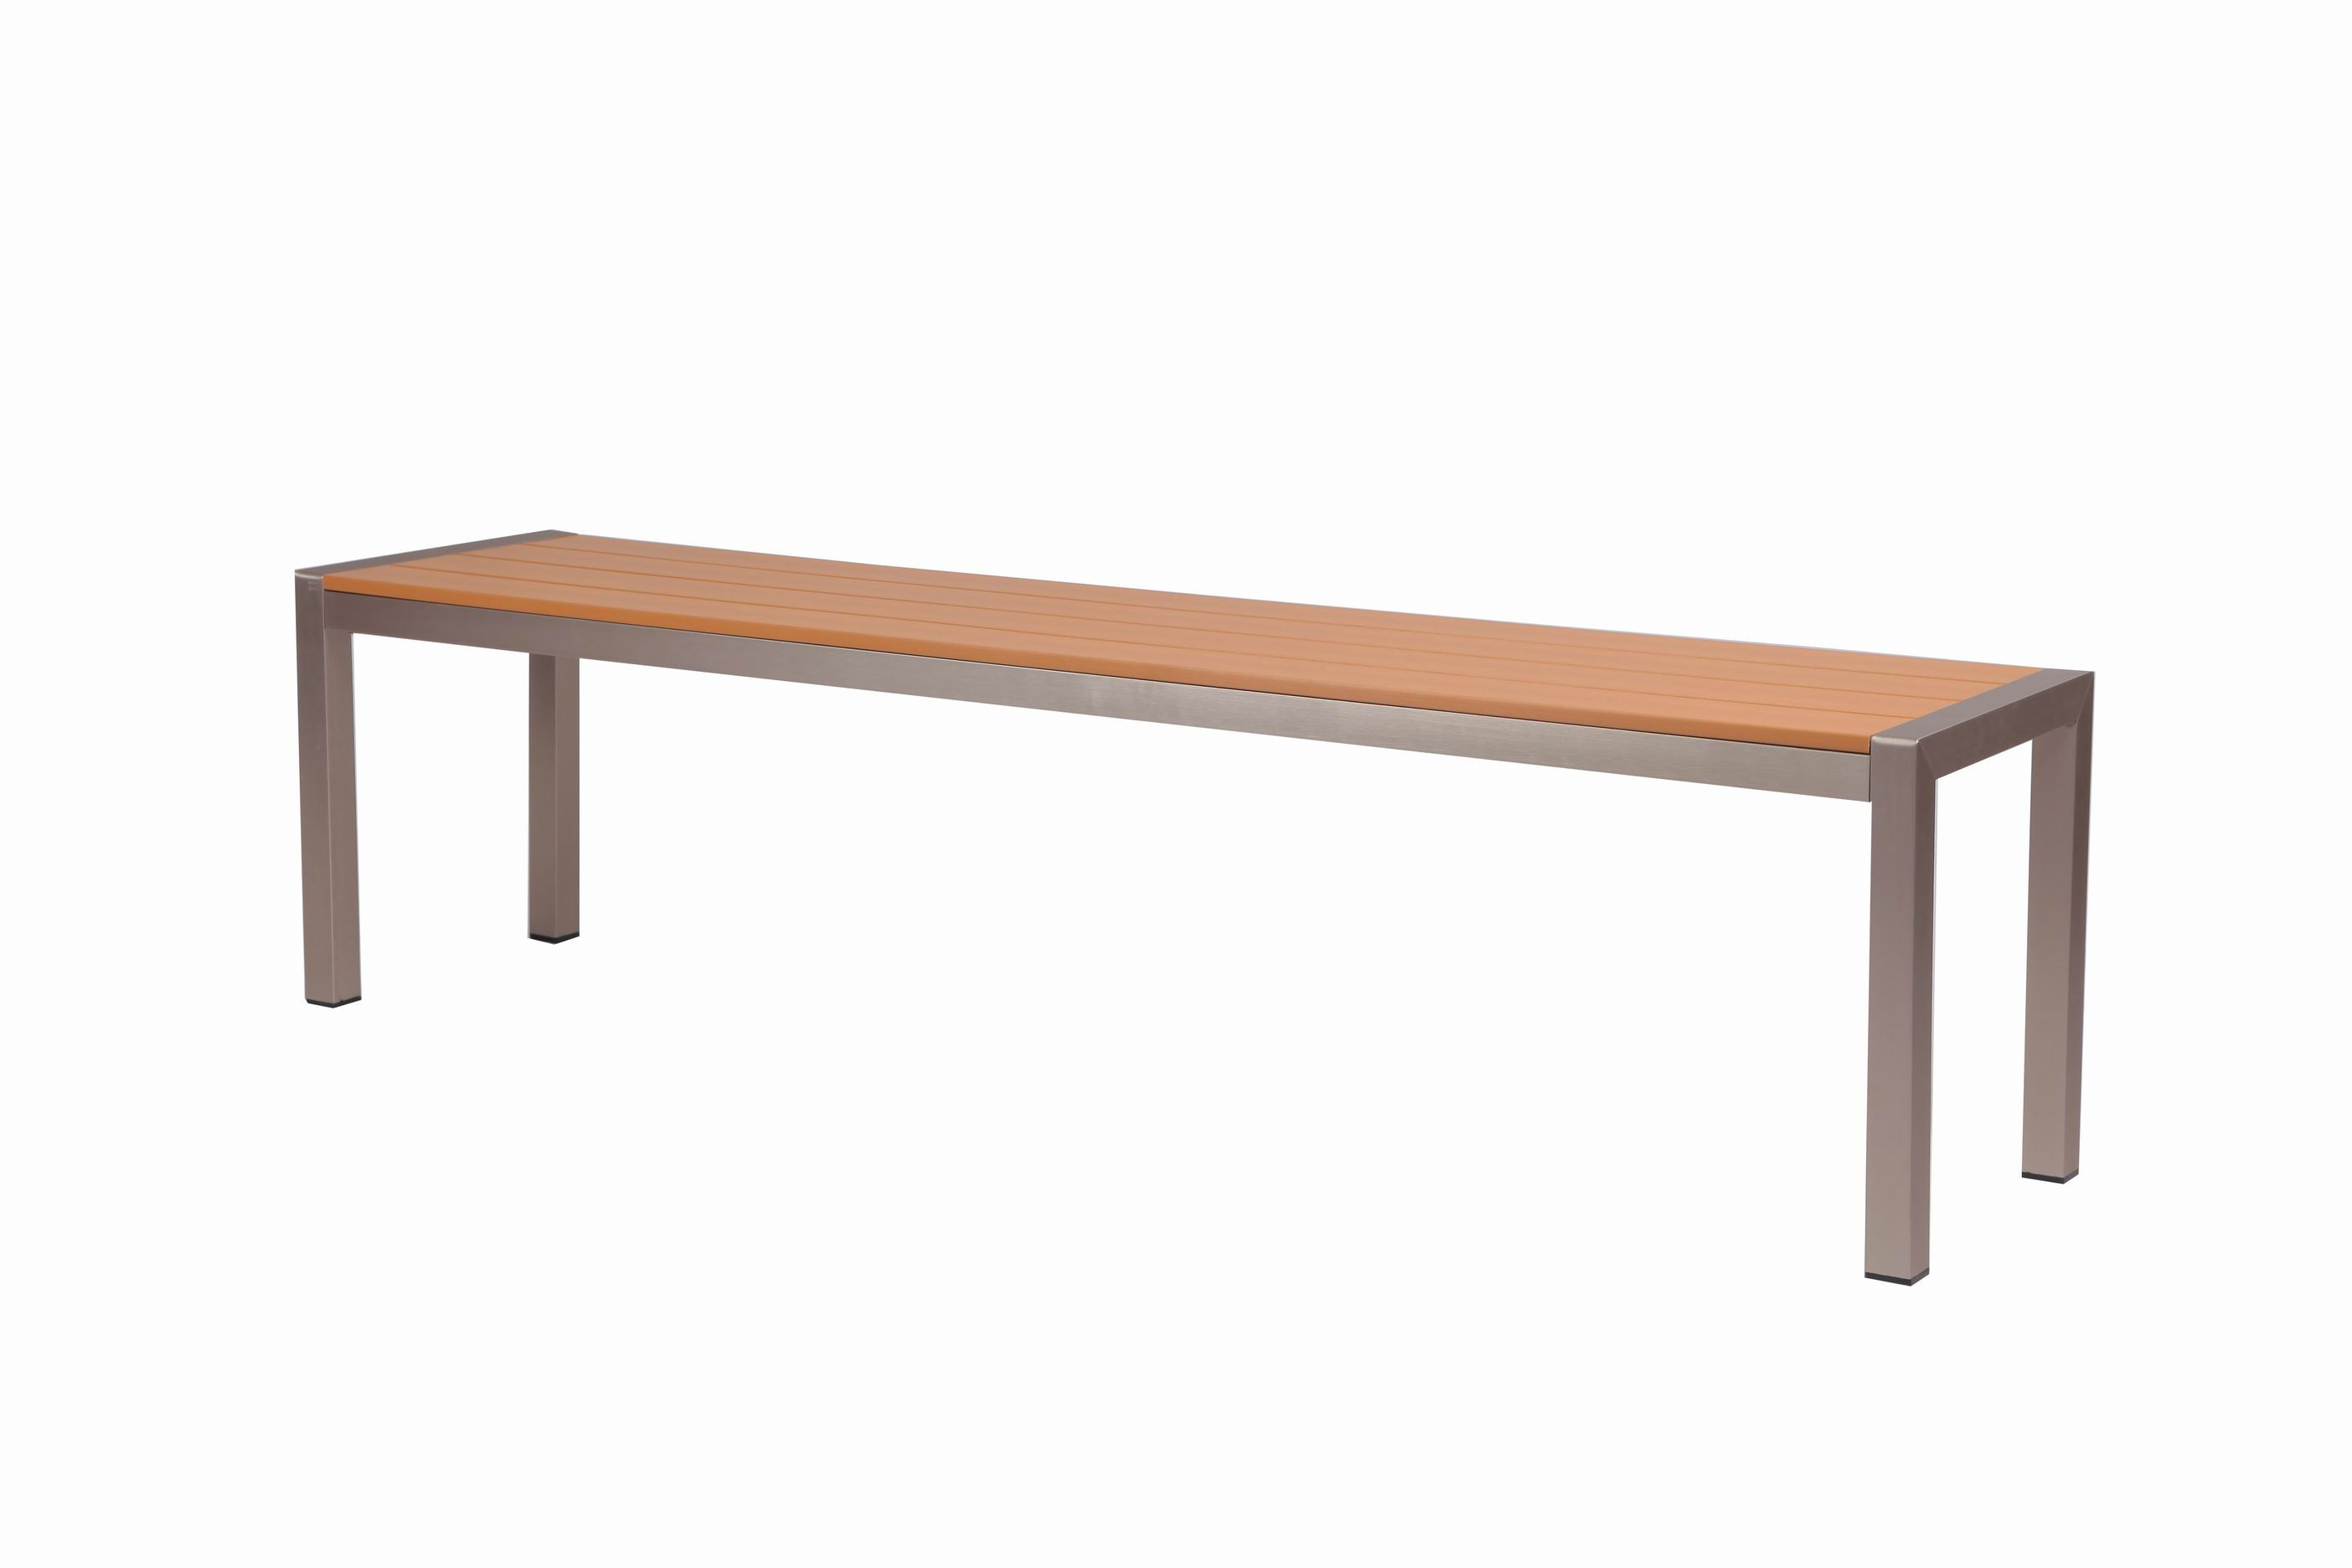 Bench Restaurant Qwdq Tan Synthetic Wood Aluminum Restaurant Bench 16 X 46